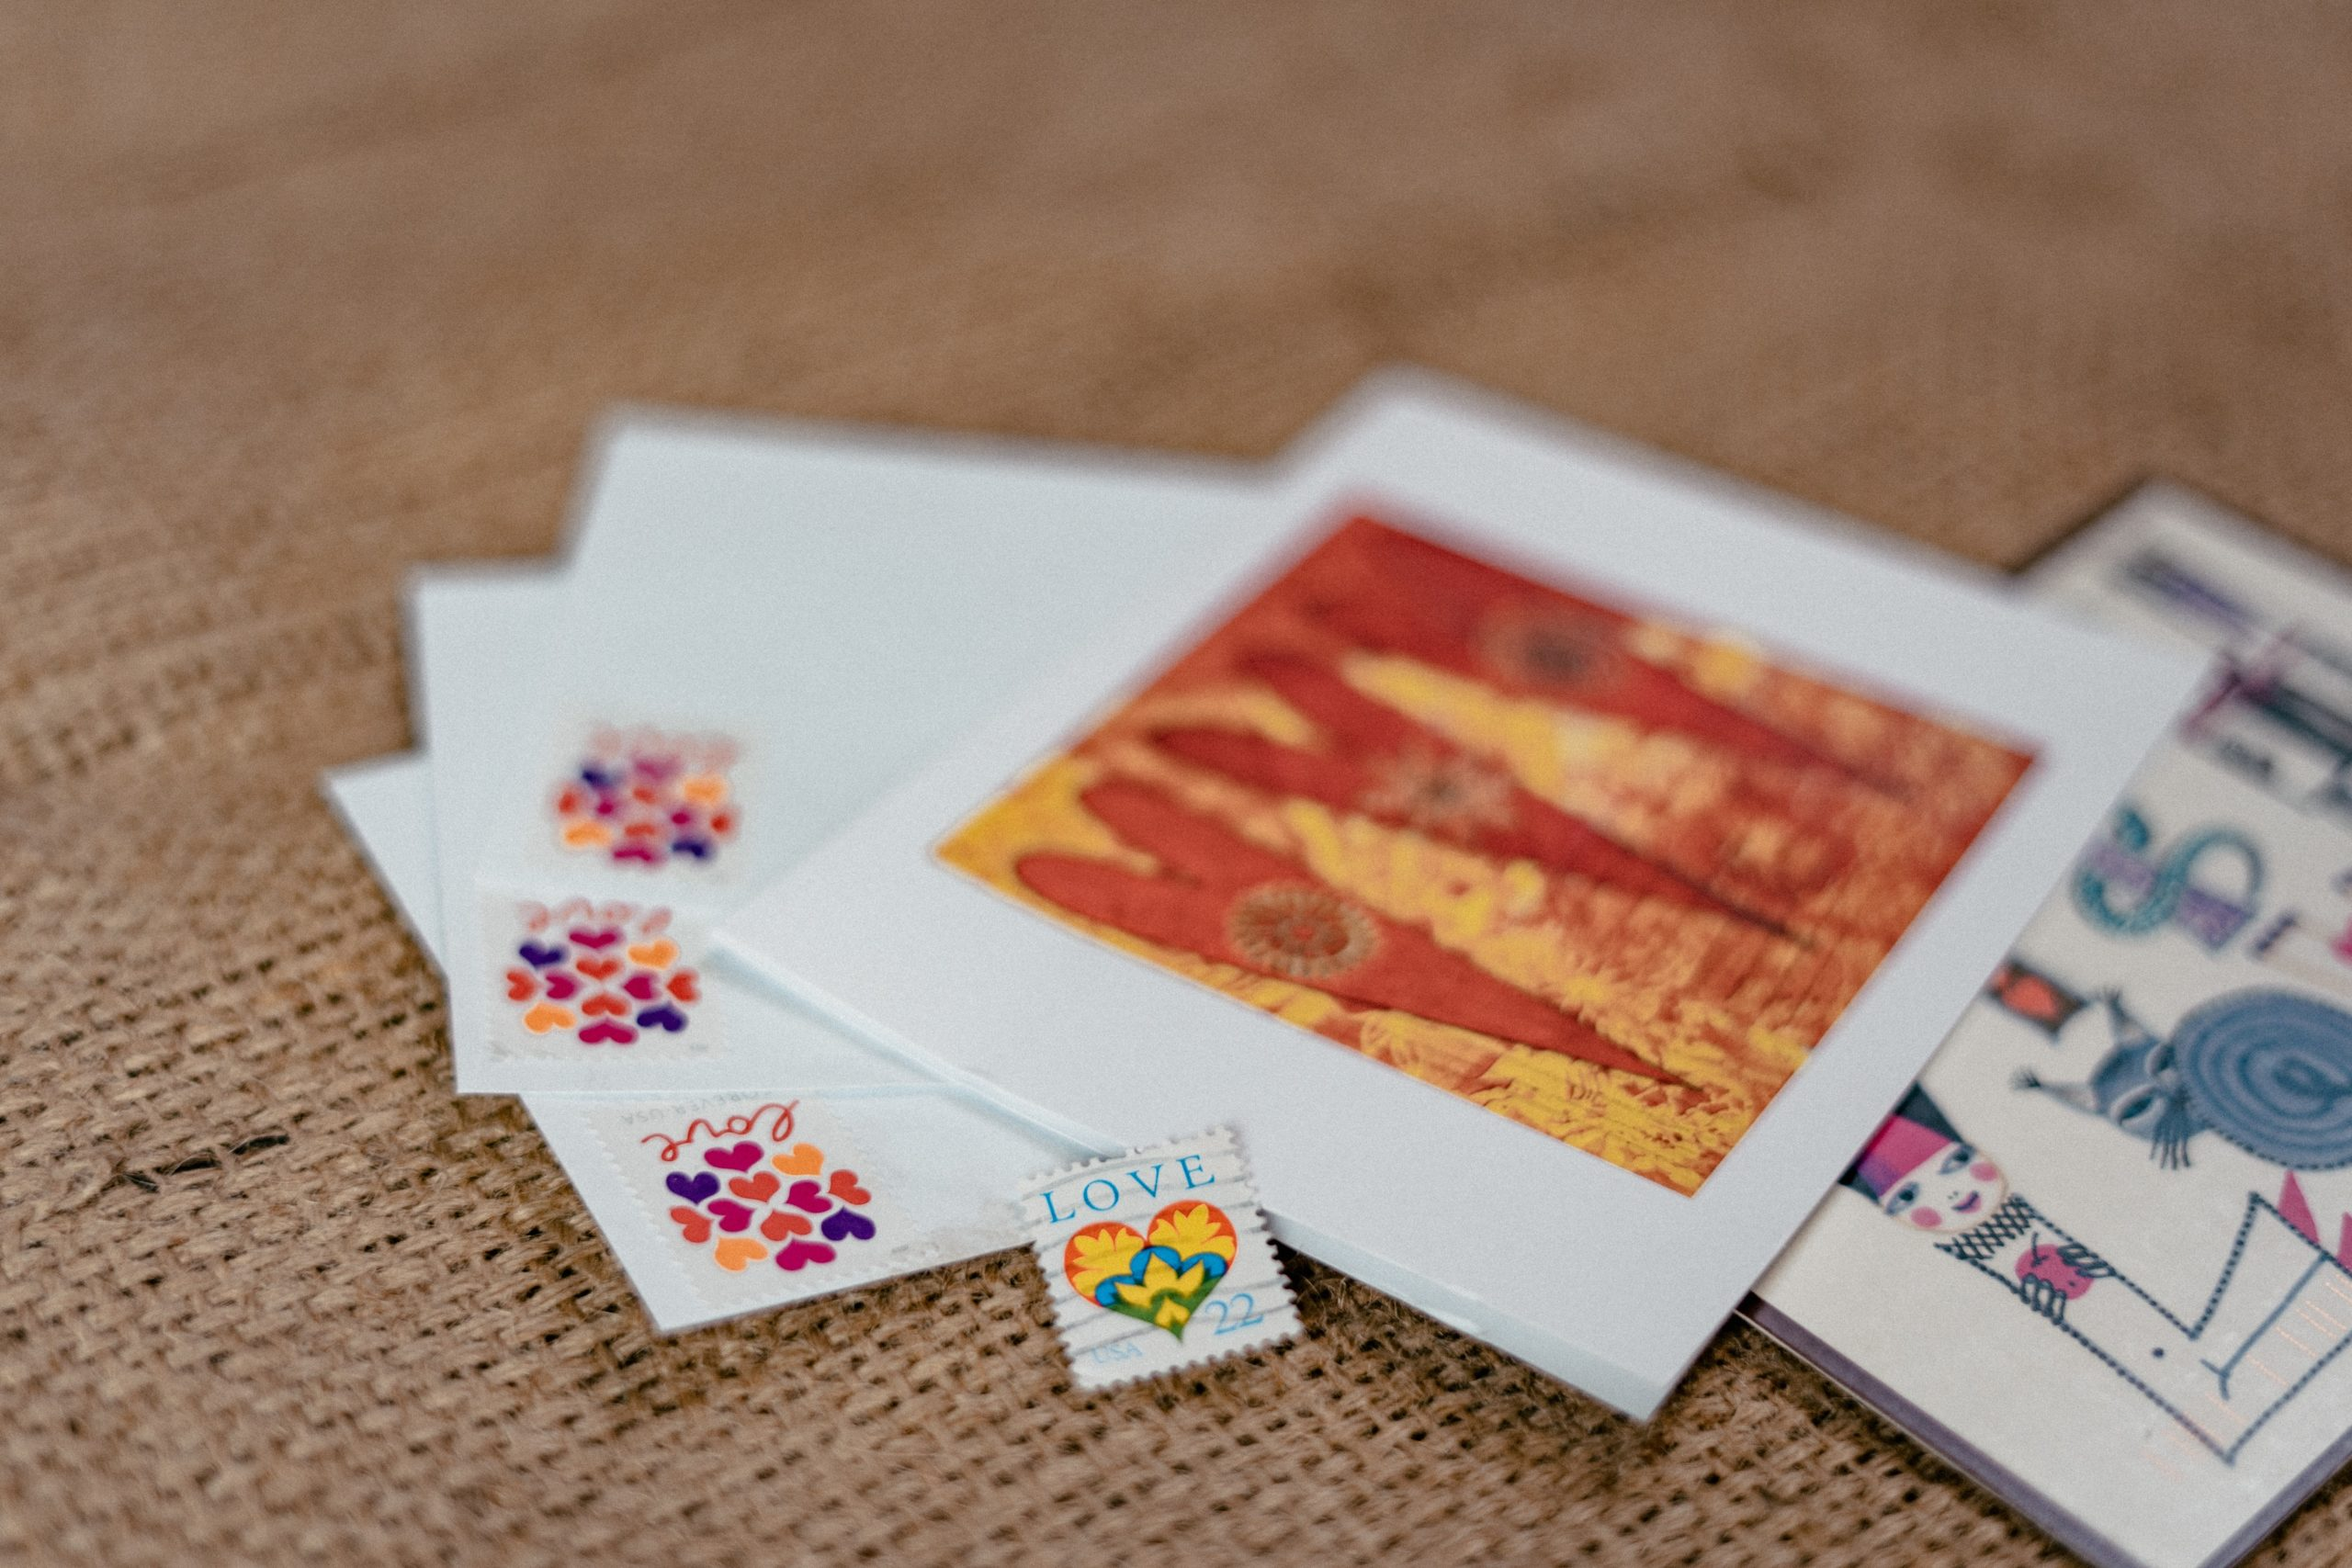 Free postcards to send to loved ones in a bid to spread joy across the nation